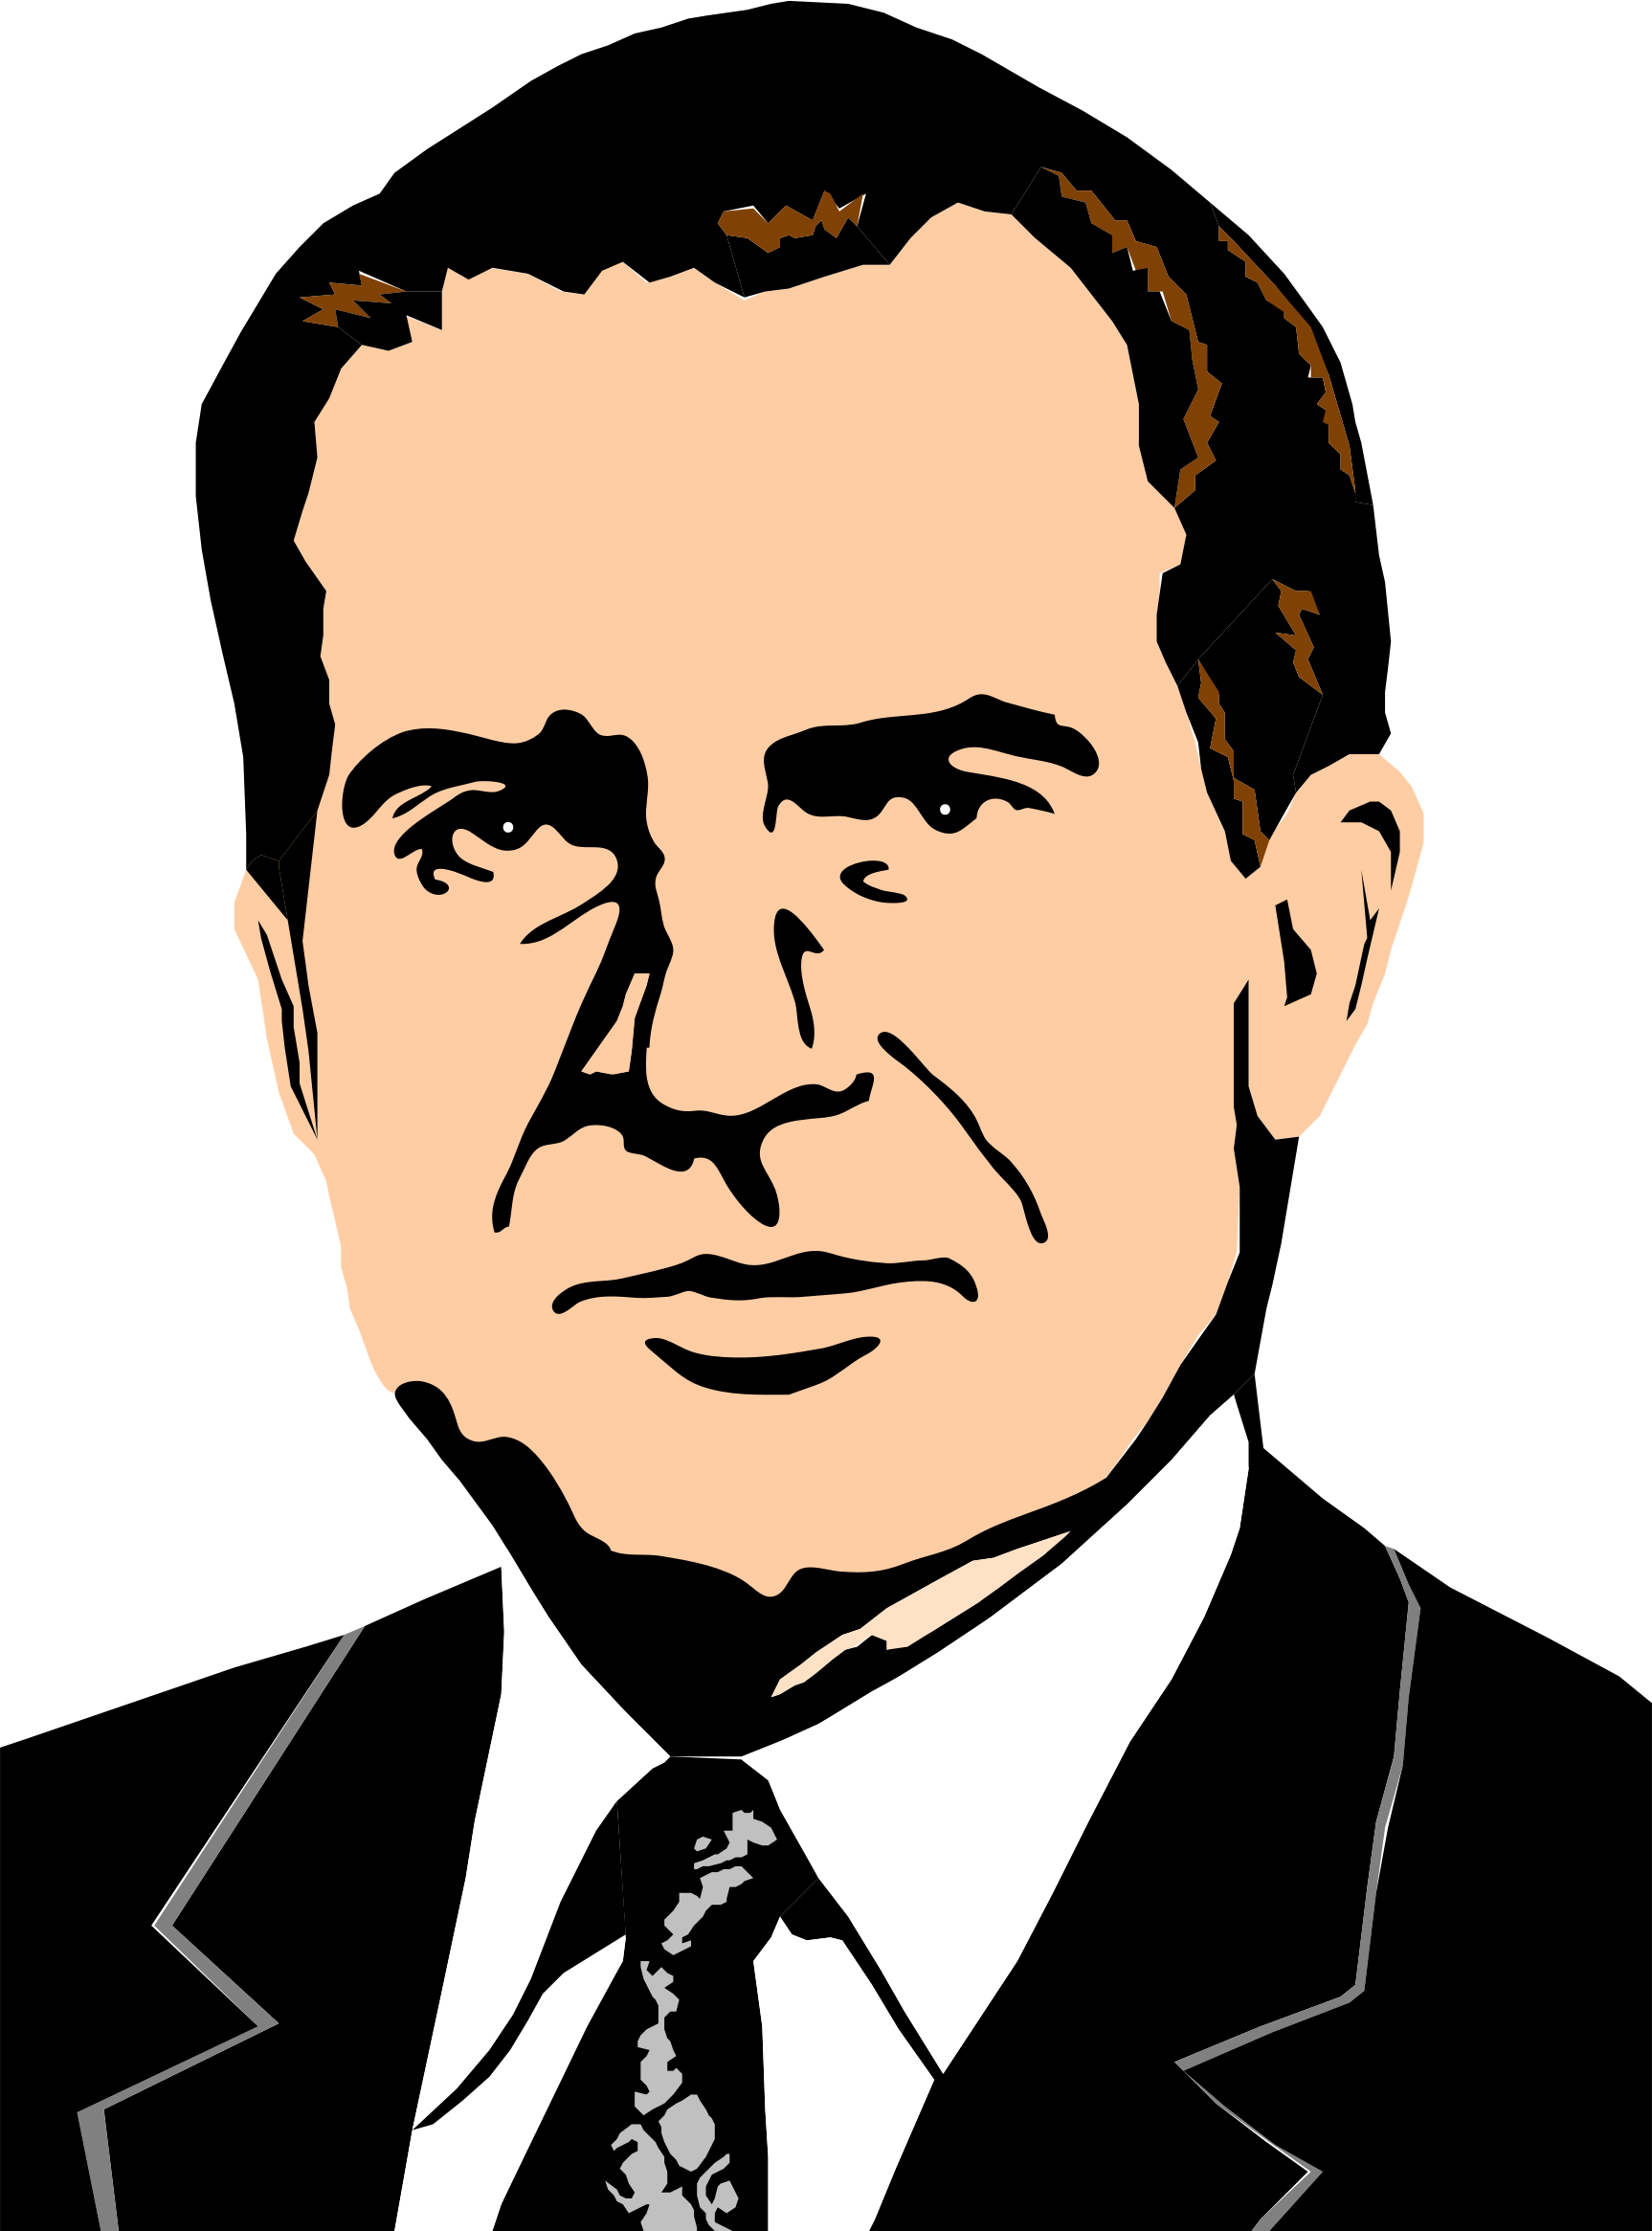 richard m nixon by cactus cowboy